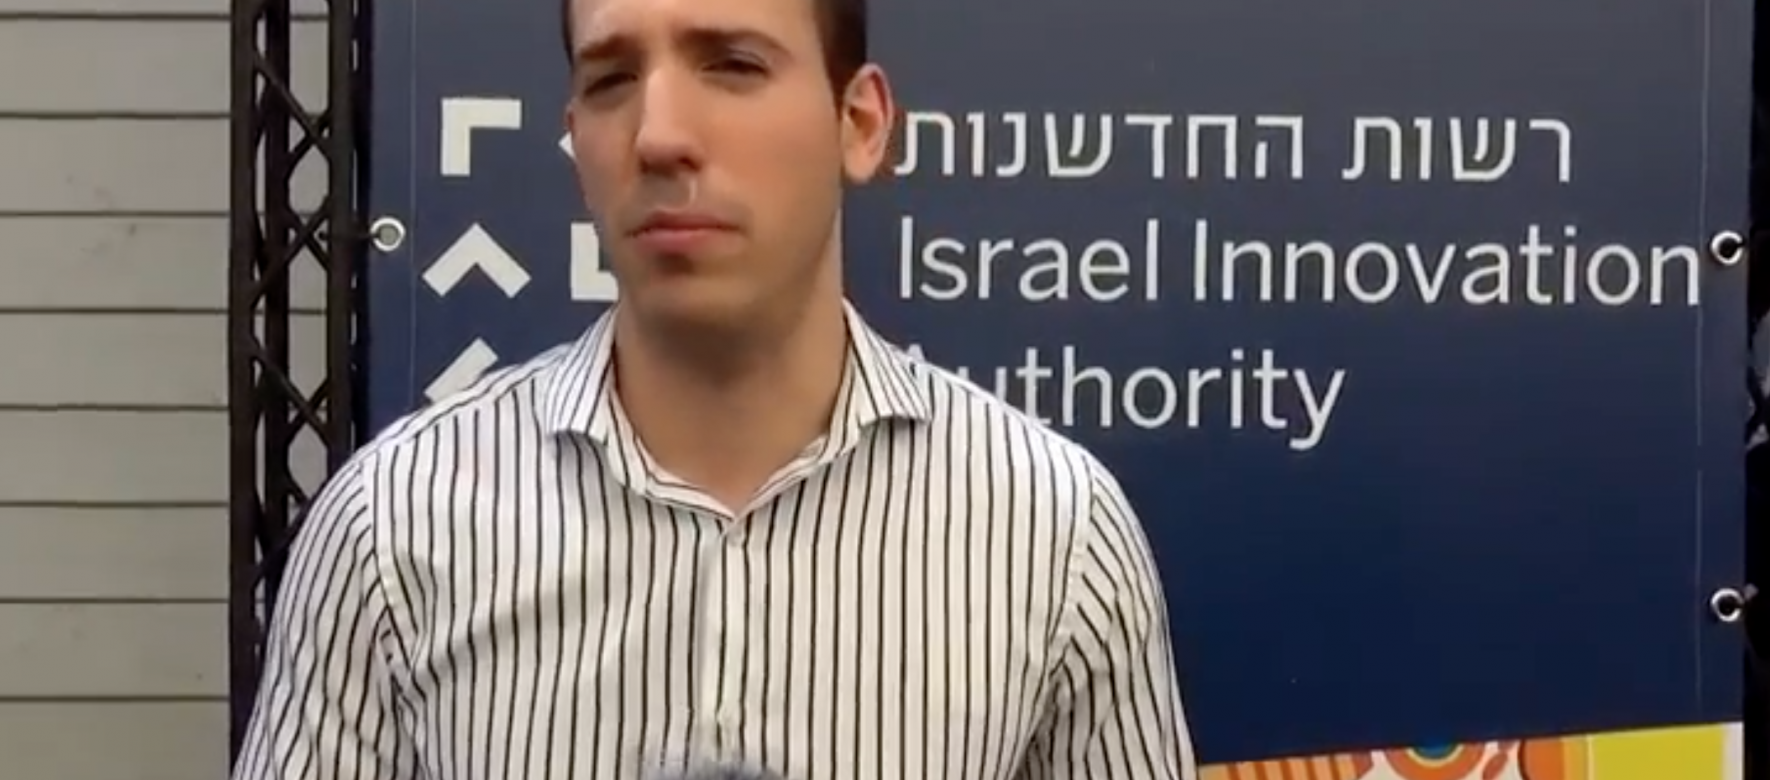 How is the Israel Innovation Authority closely working with Canada? 2